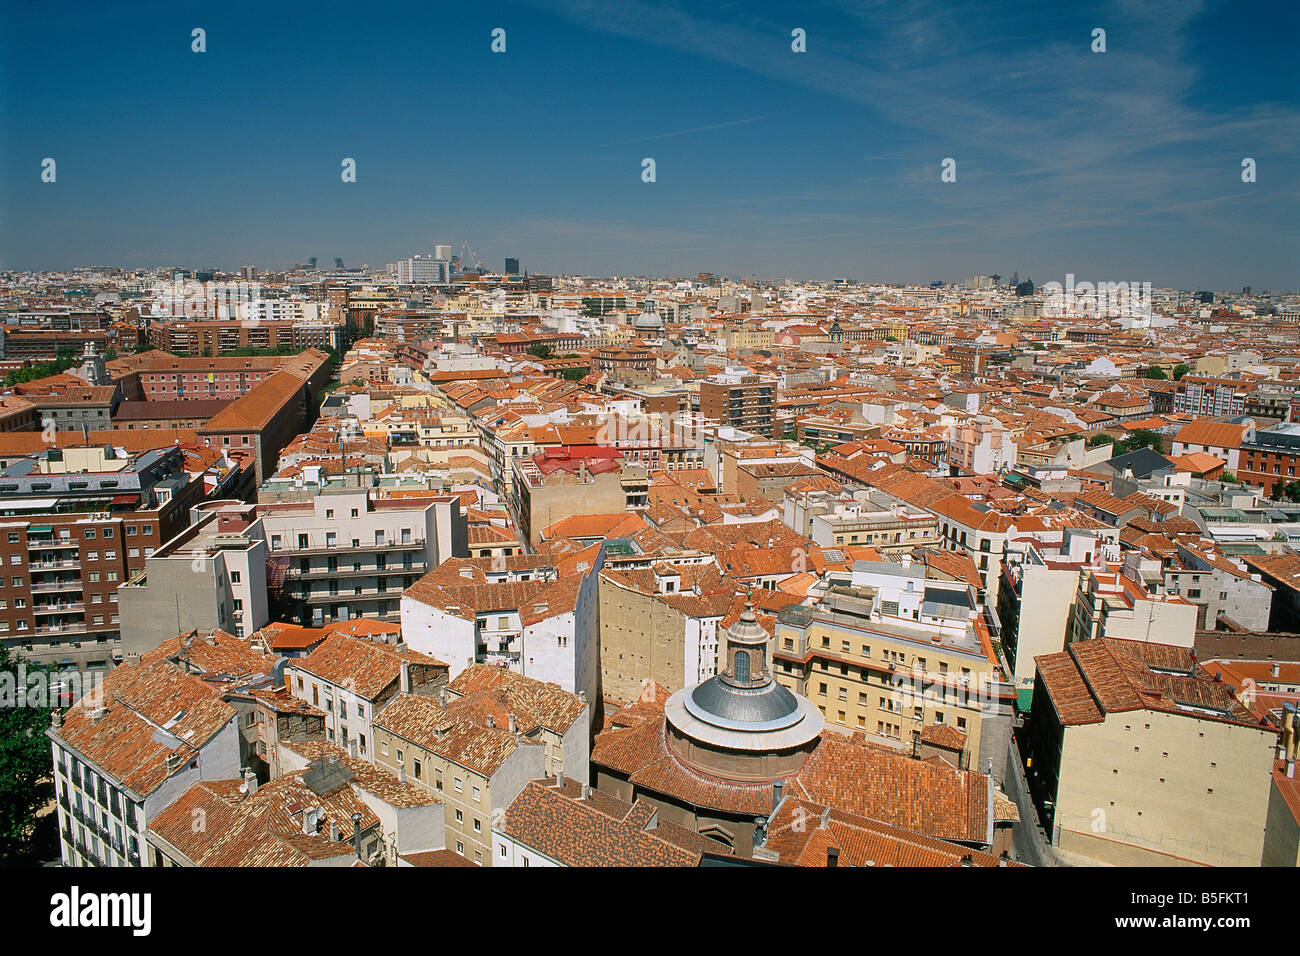 Spain - Madrid - View of the old city - Stock Image